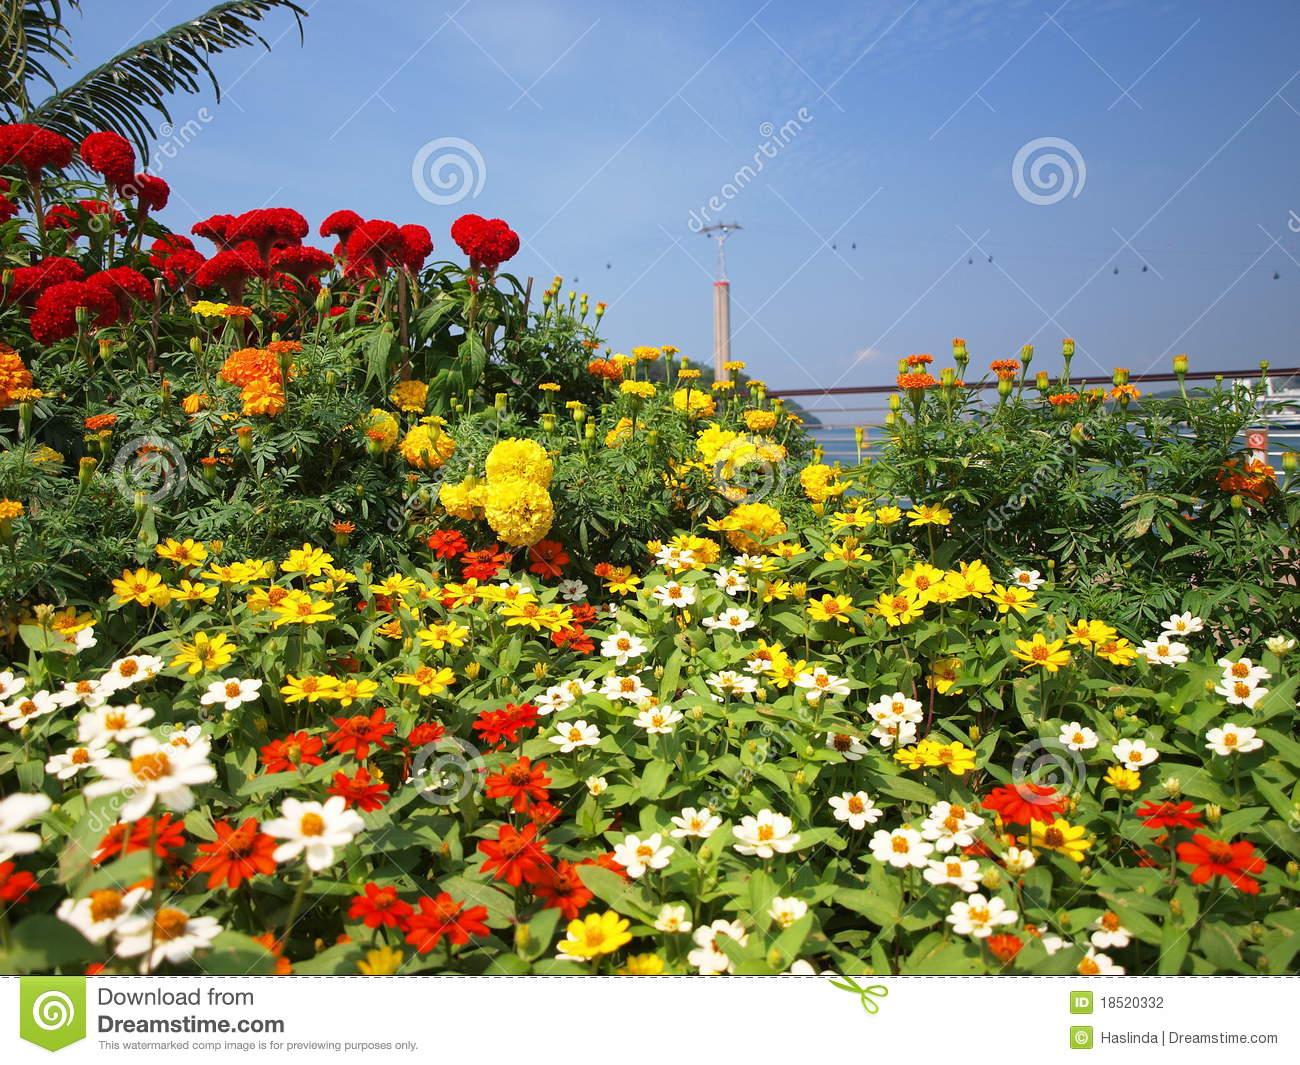 Flowers and cable car